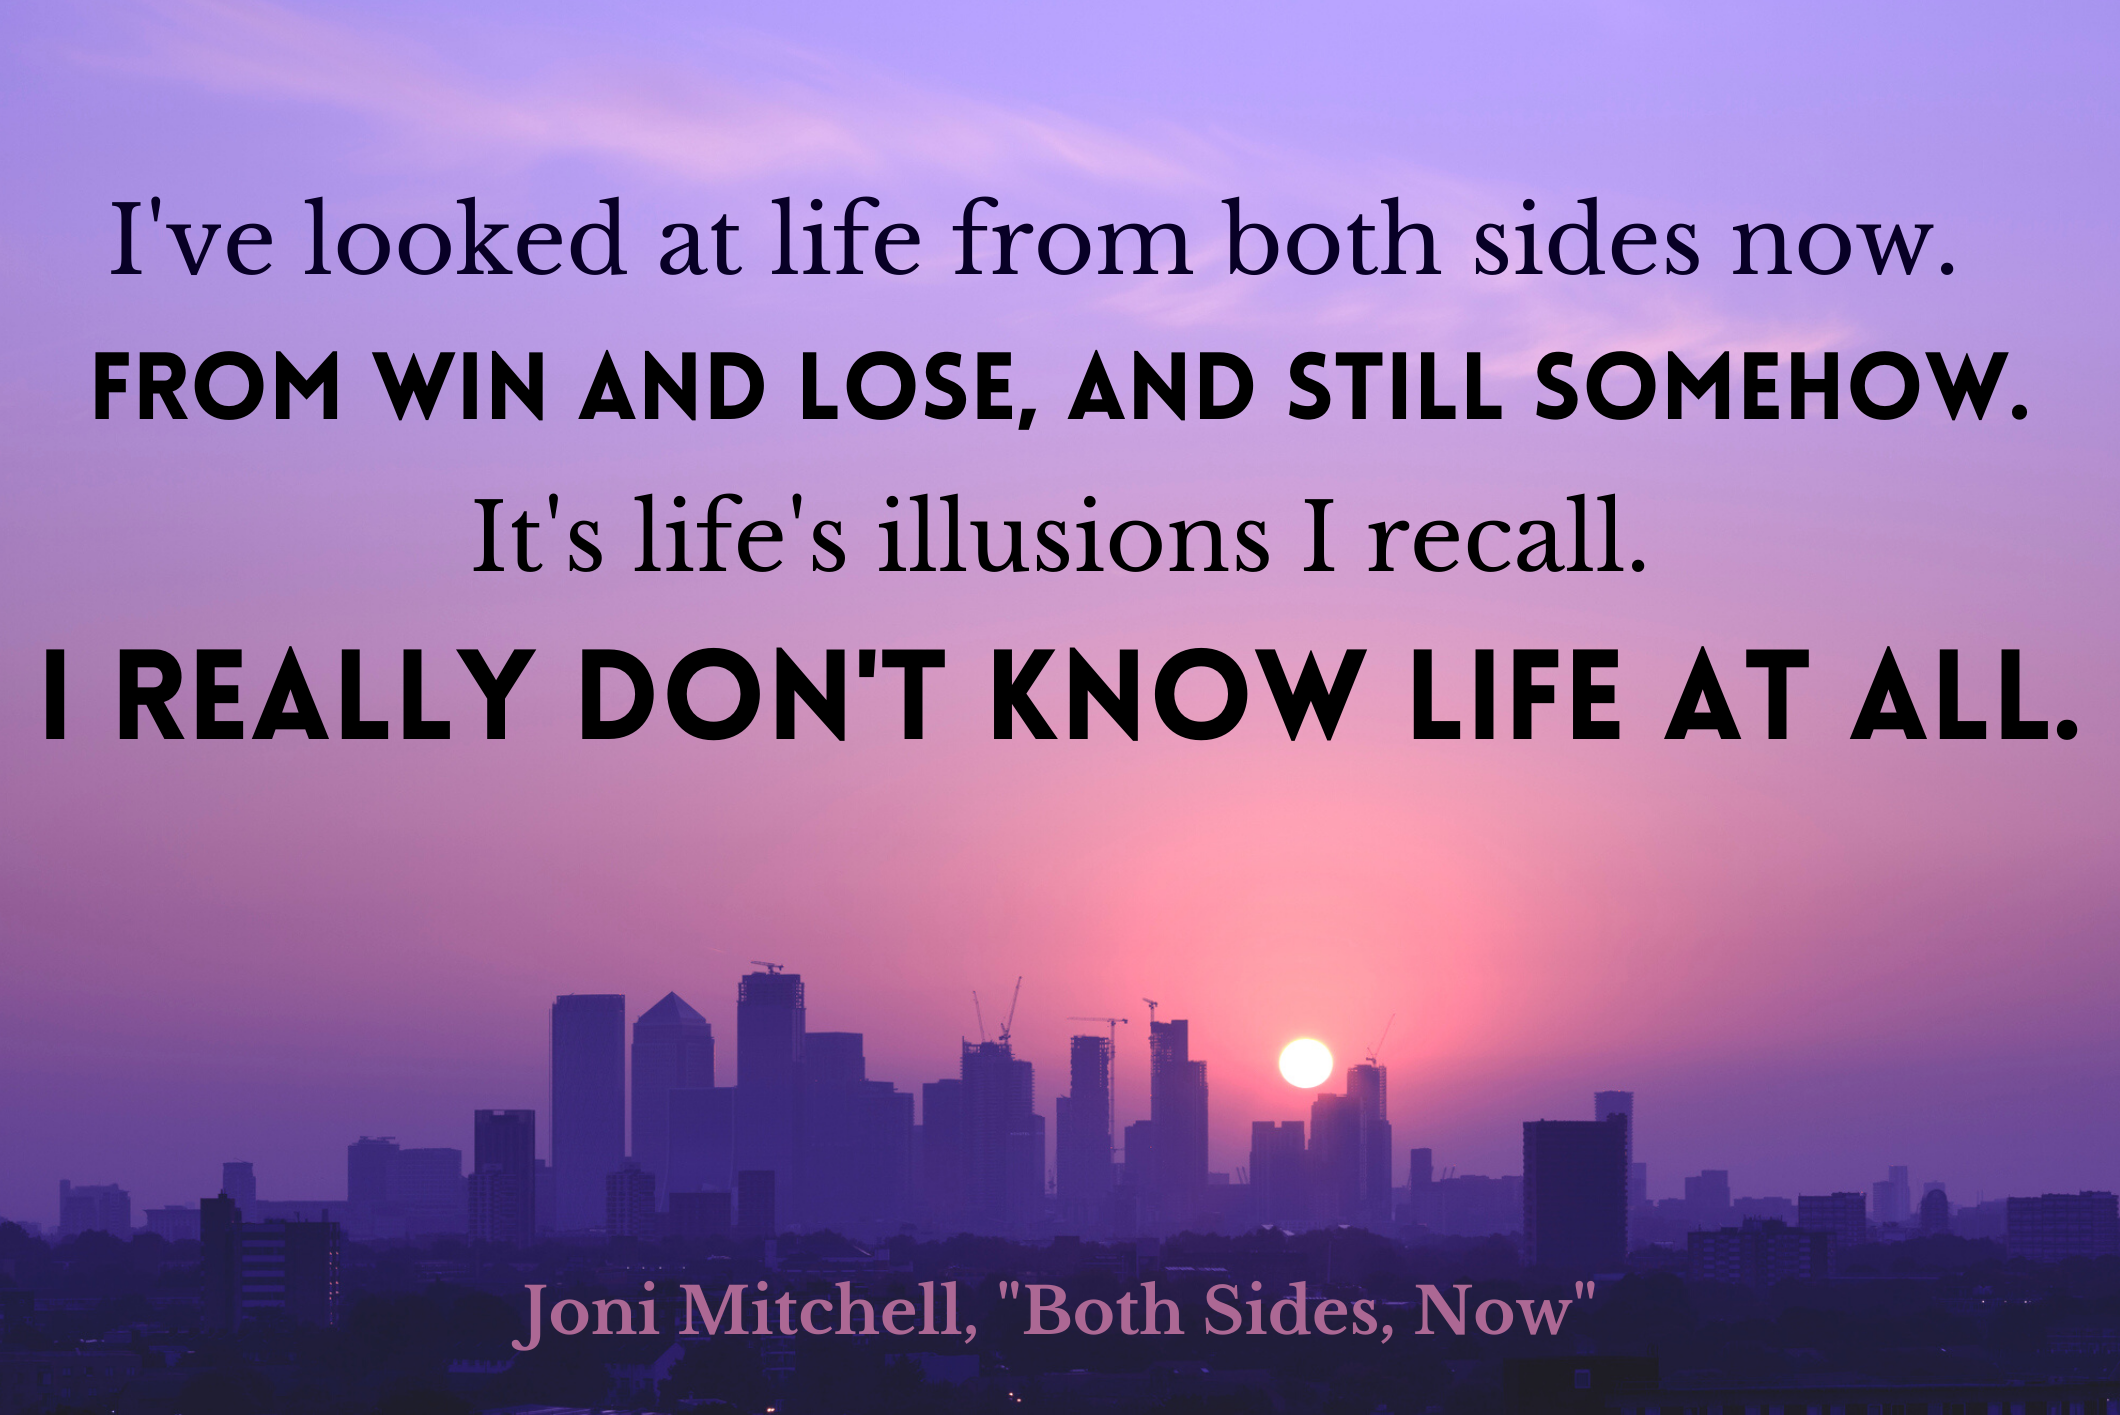 """""""I've looked at life from both sides now. From win and lose, and still somehow. It's life's illusions I recall. I really don't know life at all"""" by Joni Mitchell over sunrise over a city"""